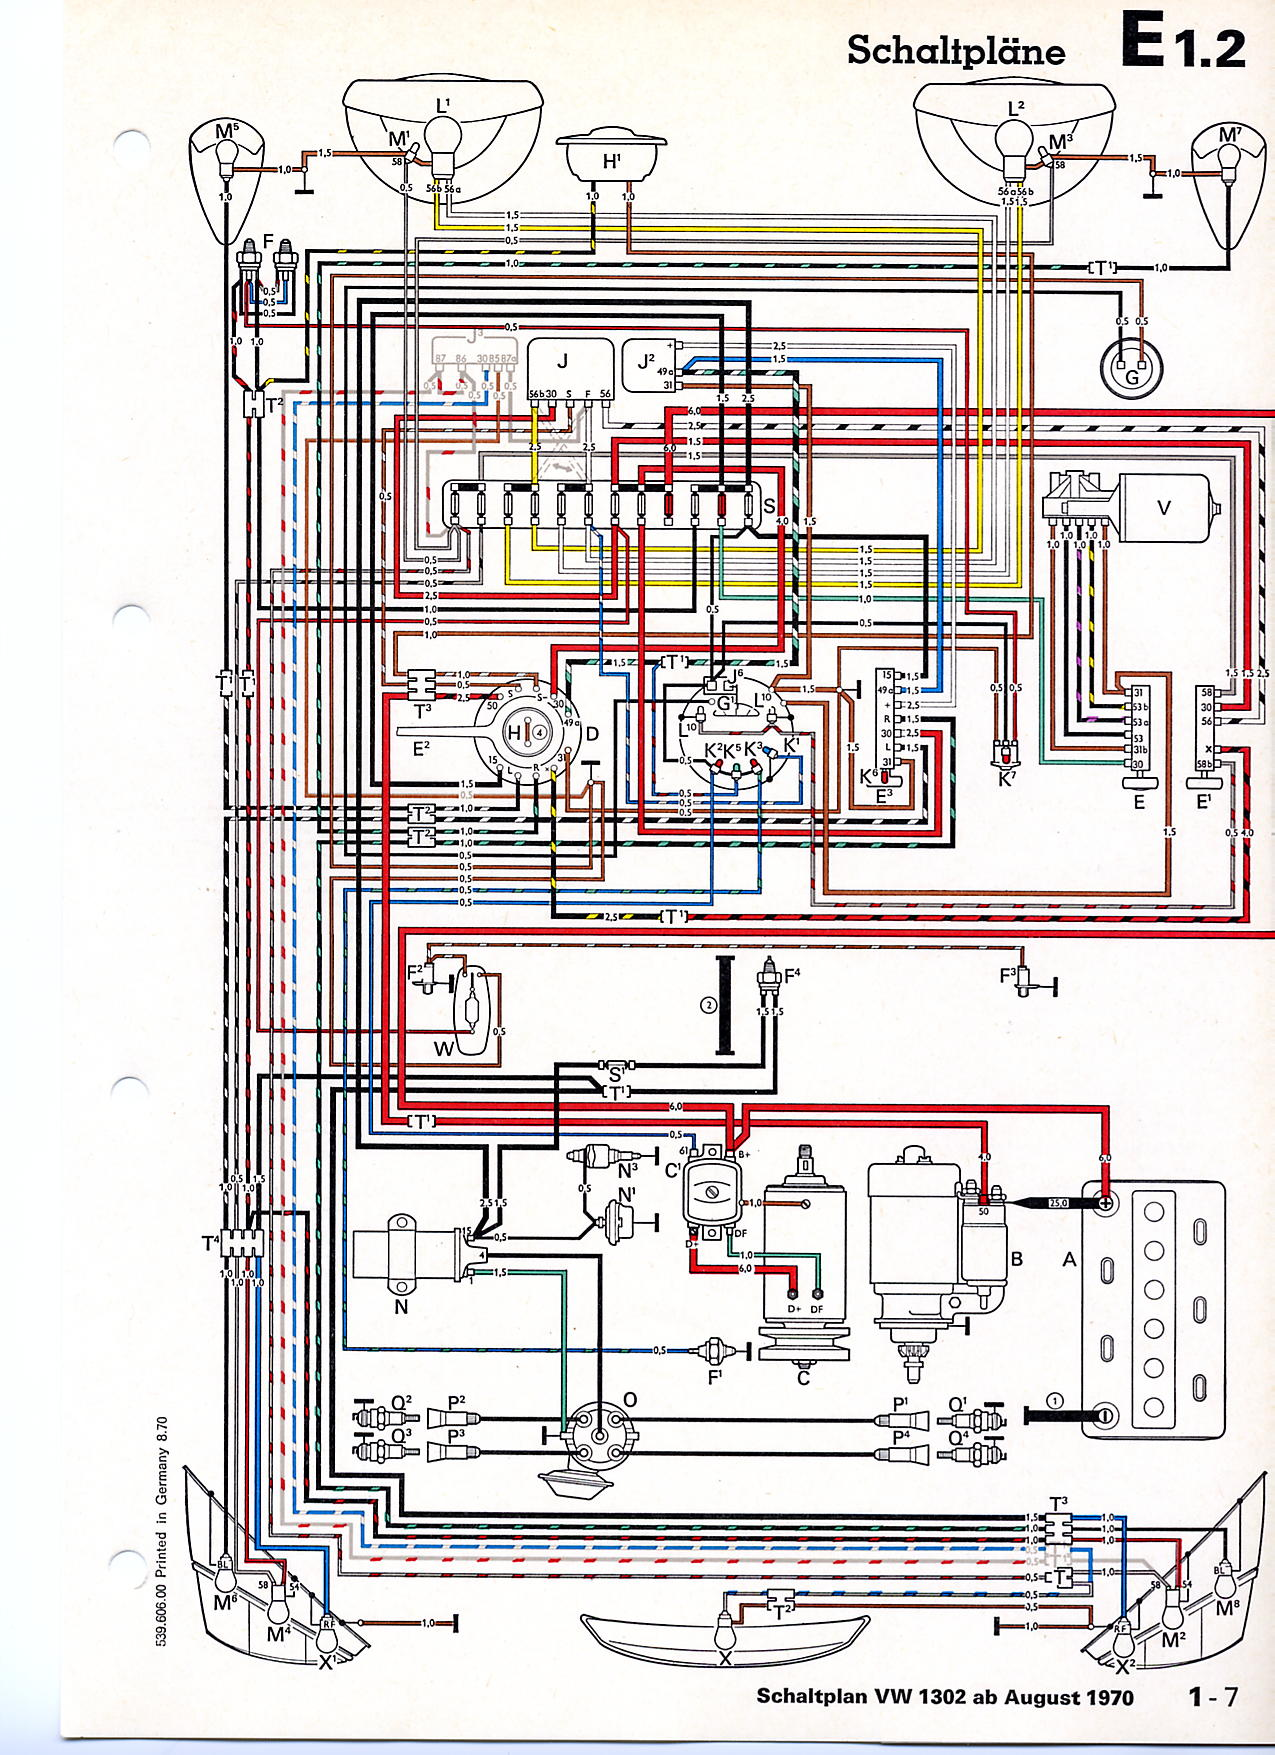 thesamba com beetle late model super 1968 up view topic rh thesamba com 74 Super Beetle and Beetle Wiring Diagram 1964 VW Beetle Wiring Diagram